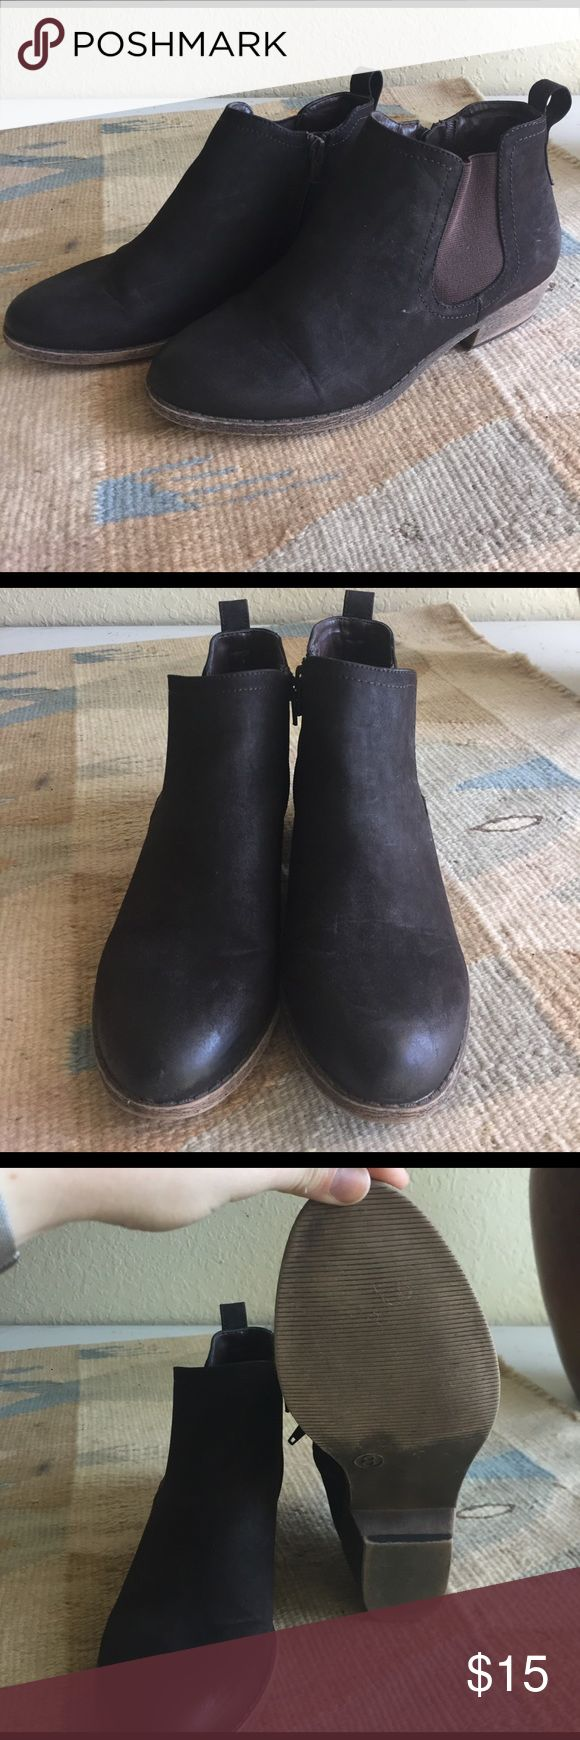 Brown Chelsea Ankle Boots Chocolate brown ankle boots. Very good condition. Hardly worn. Merona Shoes Ankle Boots & Booties